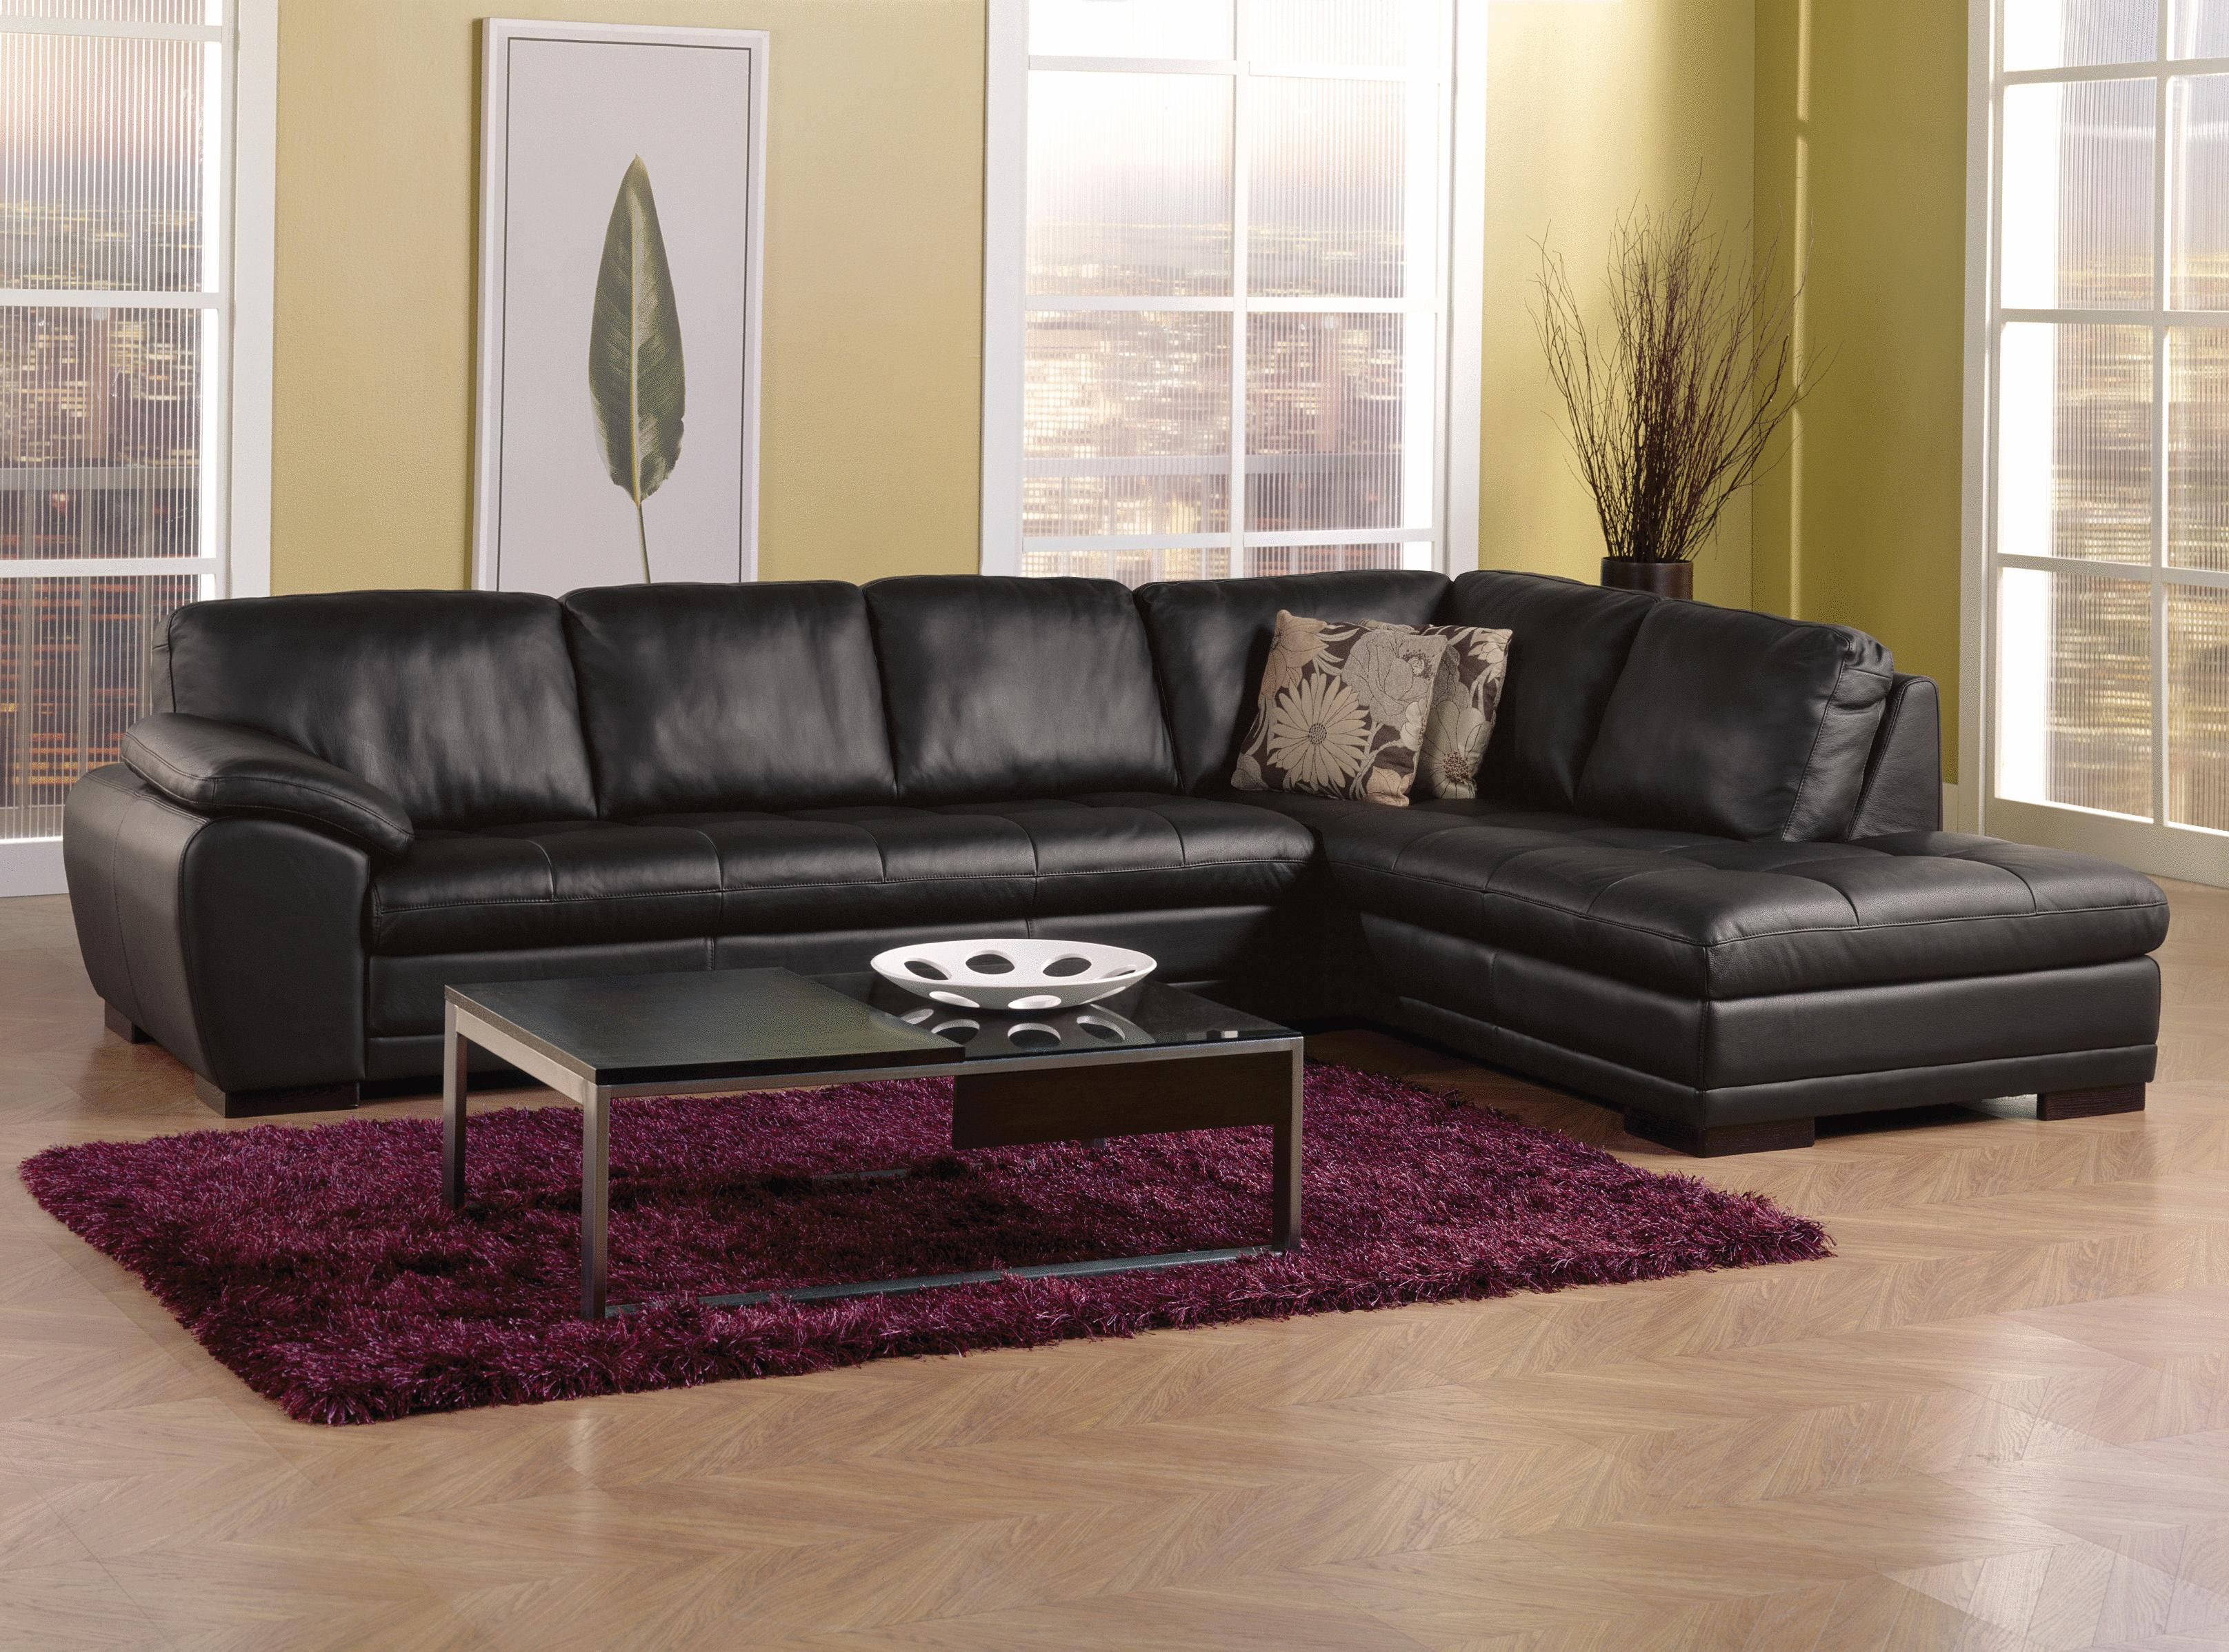 Palliser Miami Contemporary 2 Piece Sectional Sofa With